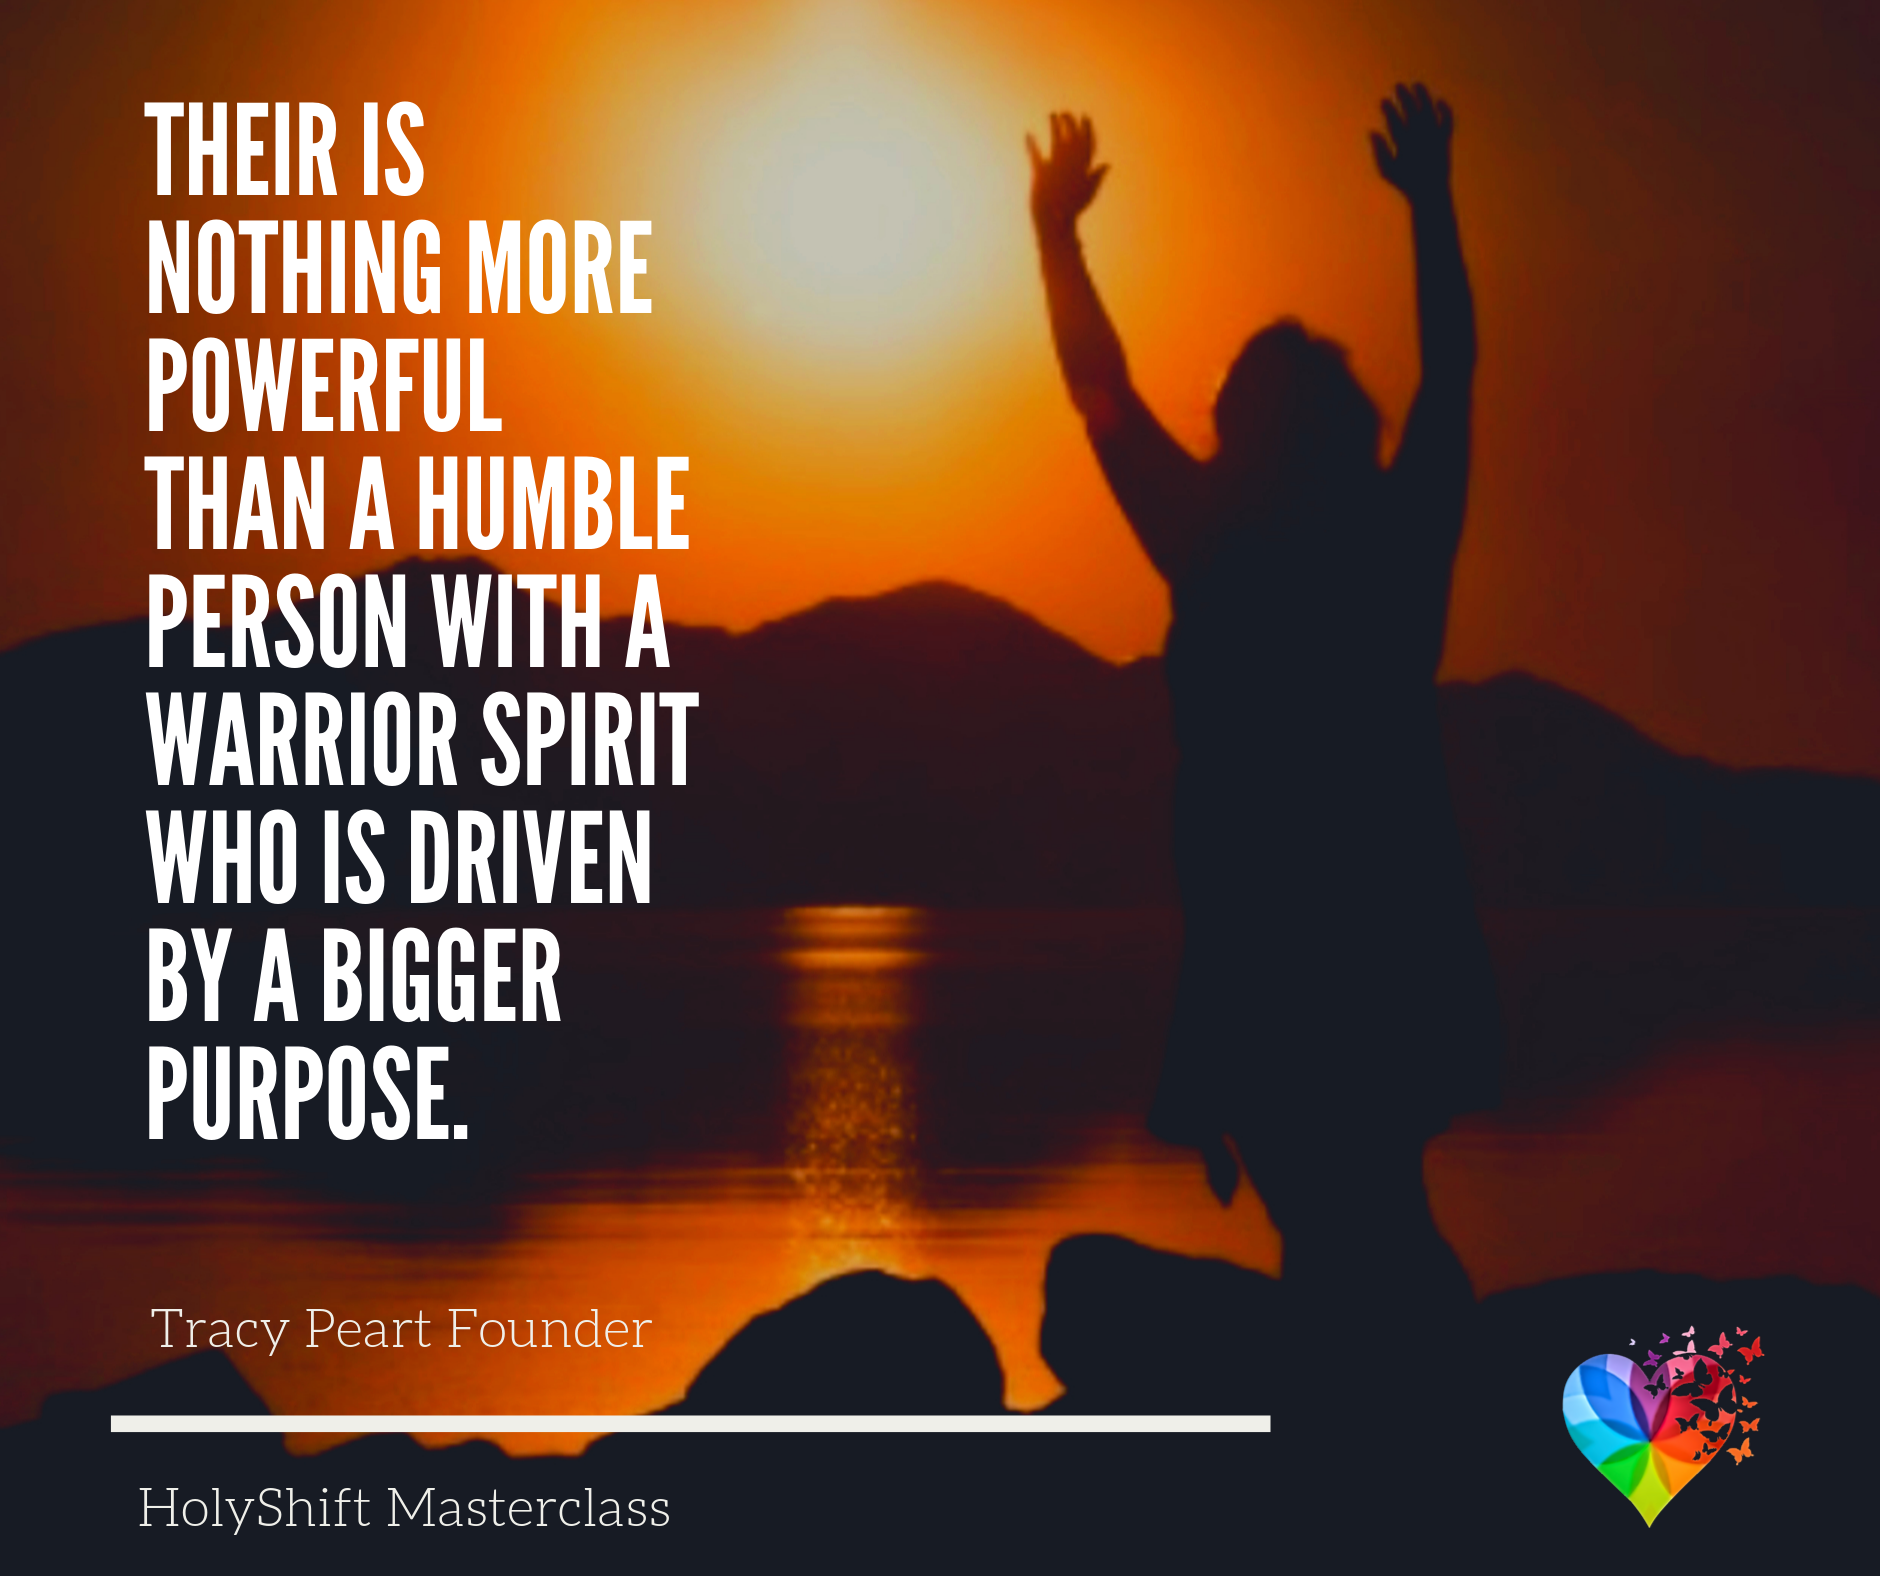 Their is nothing more powerful than a humble person with a warrior spirit who is driven by a bigger purpose.